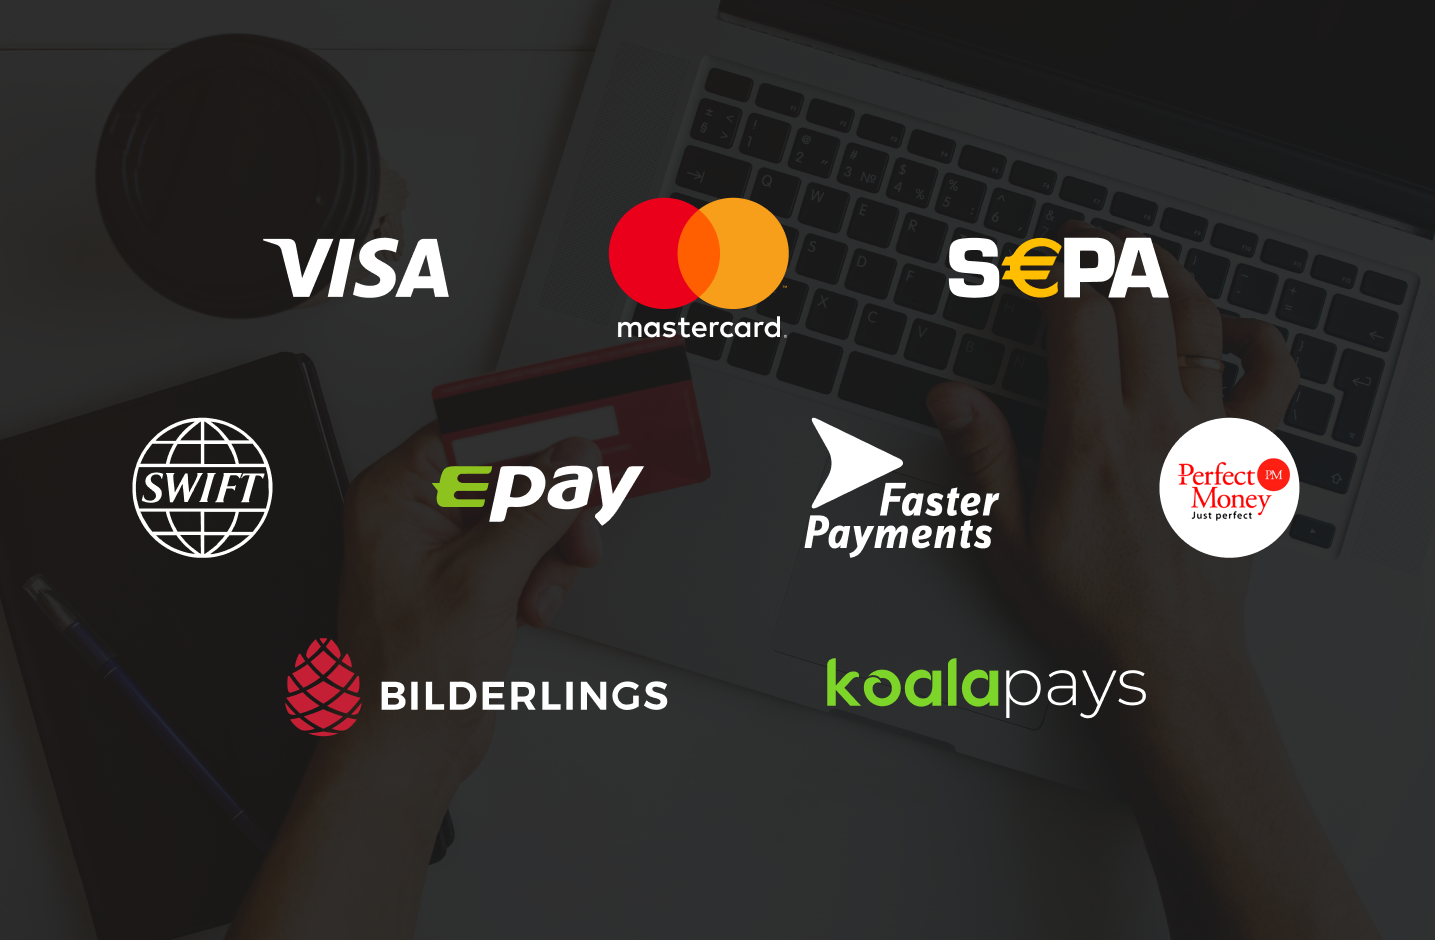 Fast and easy deposits & withdrawals